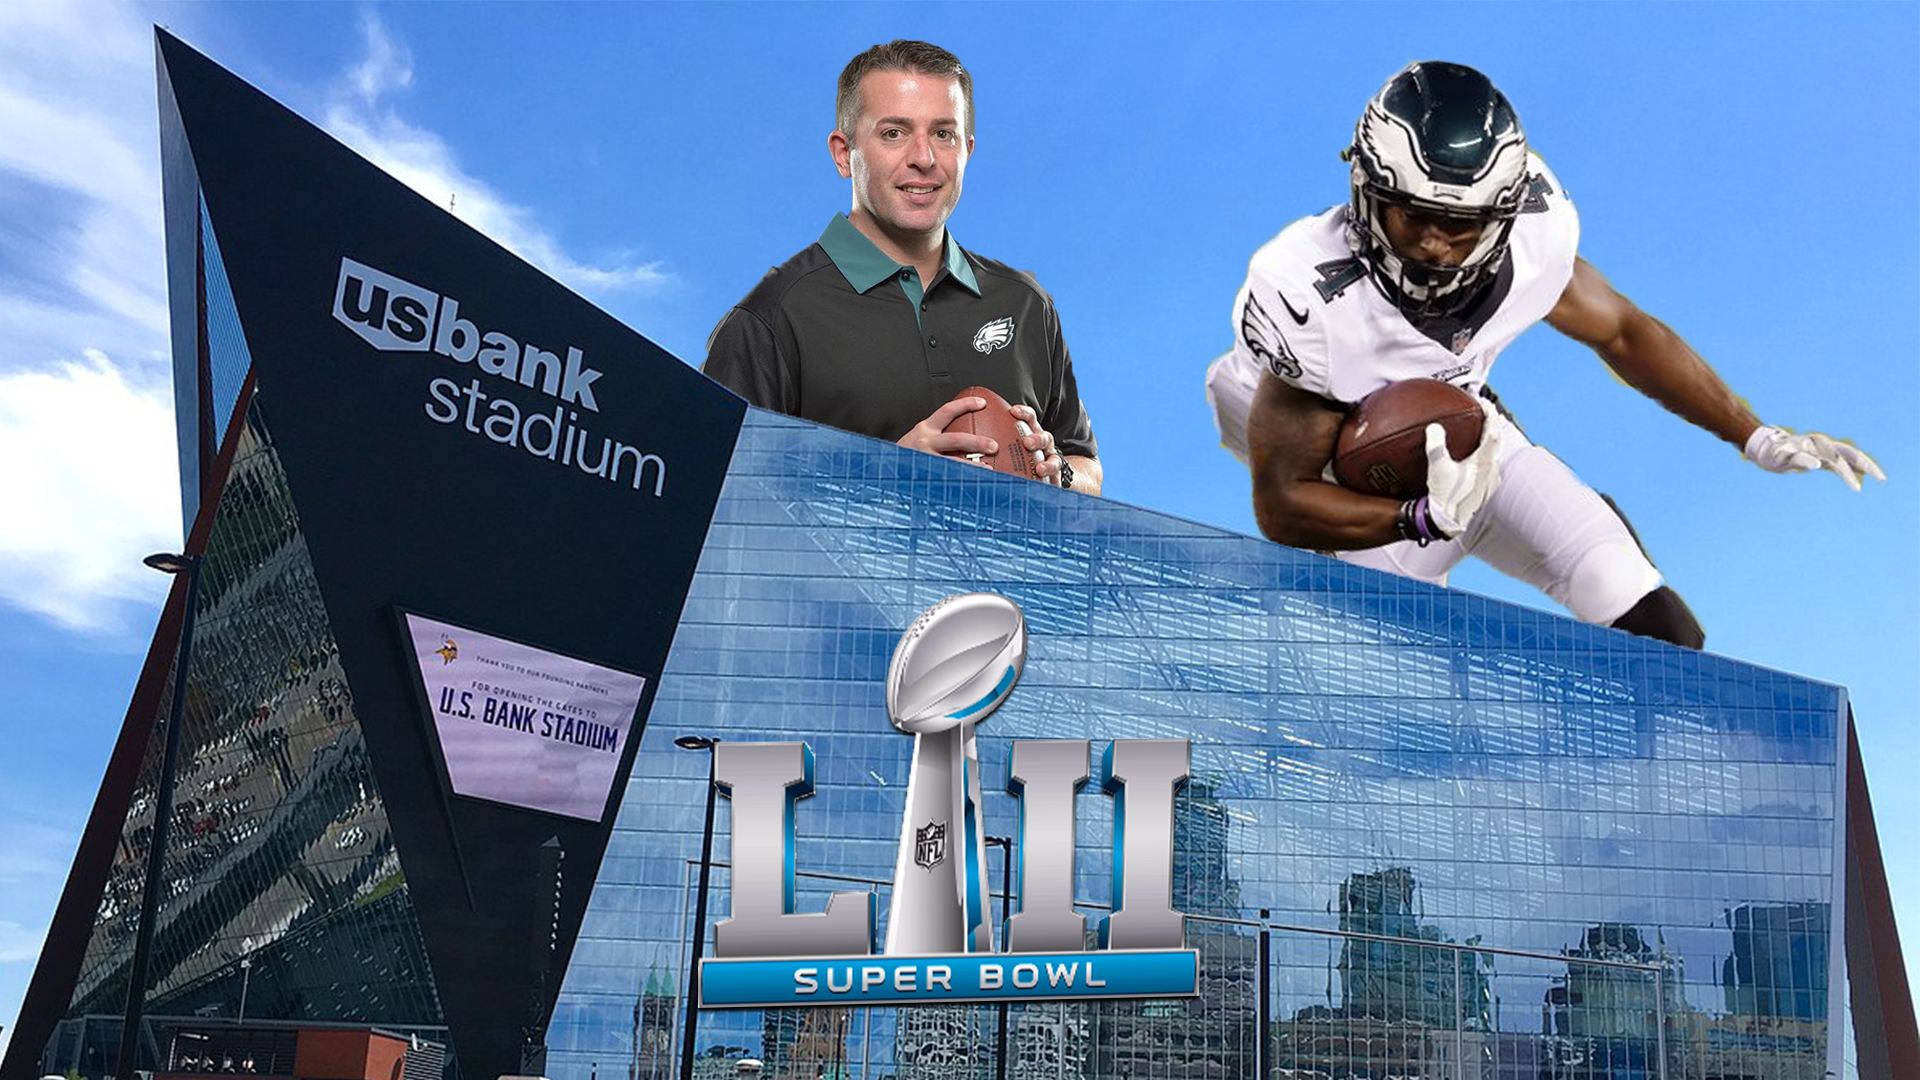 Football: Former Dukes Davis and DeFilippo Advance to Super Bowl LII with Eagles